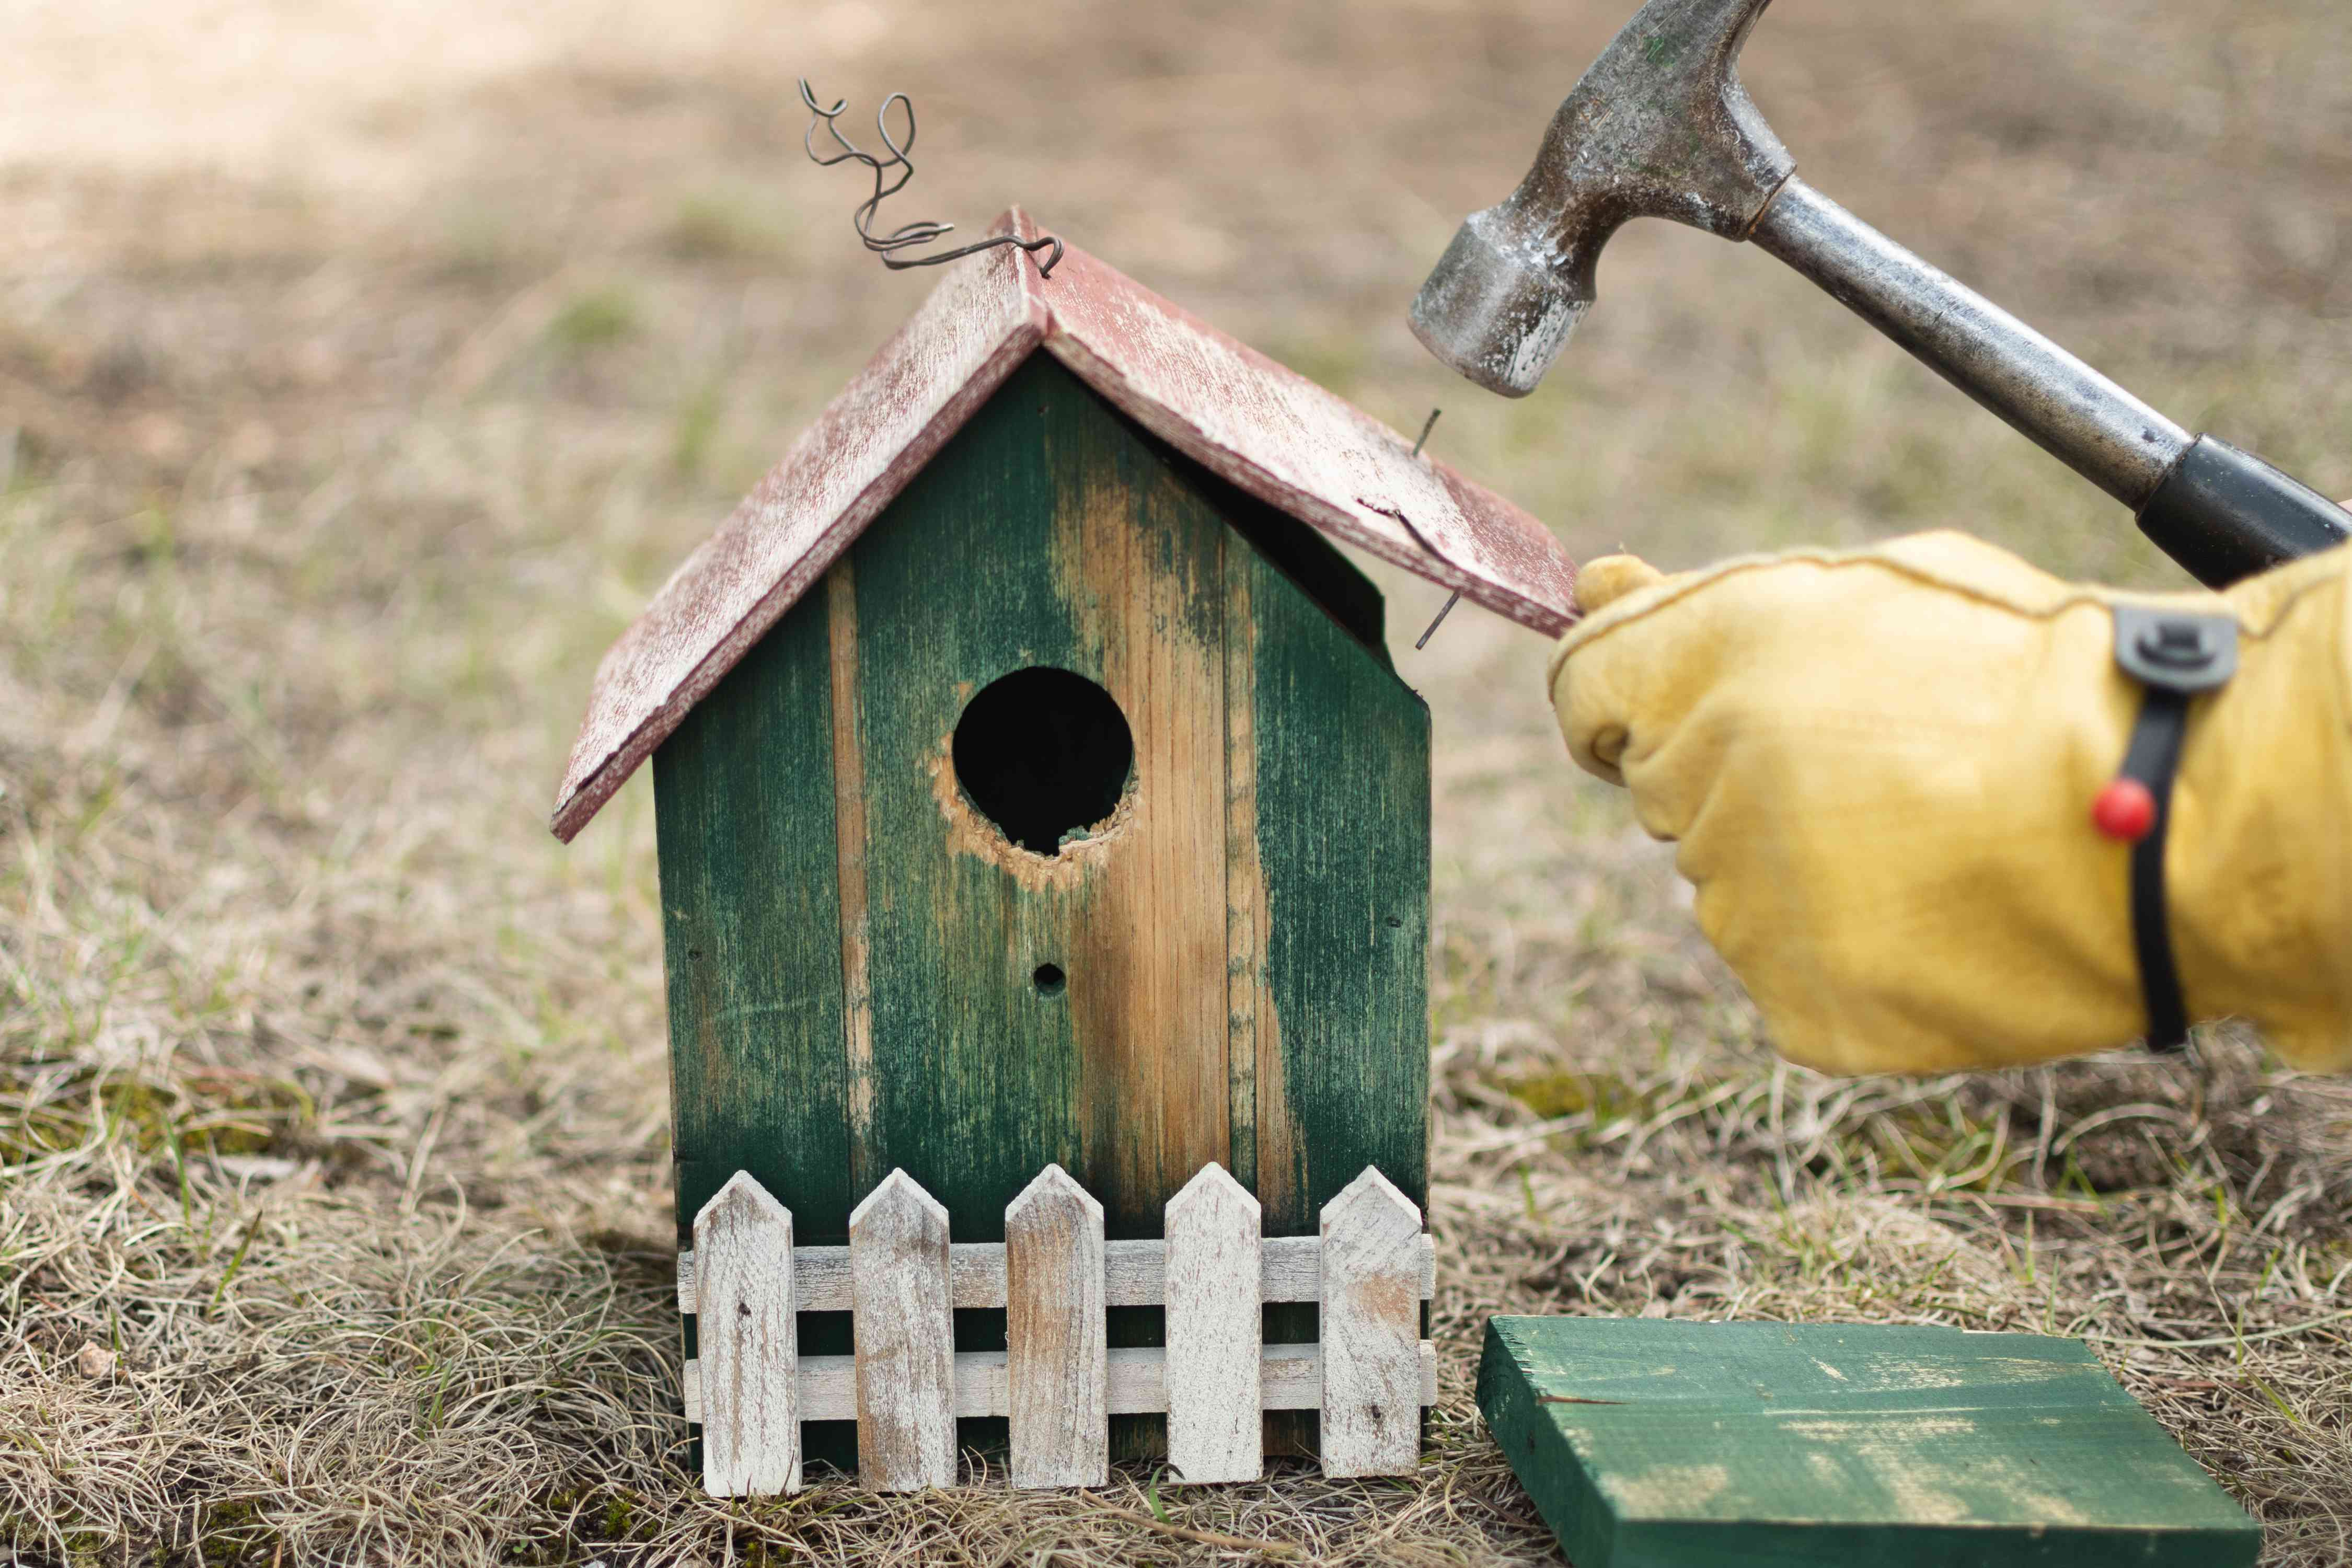 Loose hinges on birdhouse roof being fixed with hammer